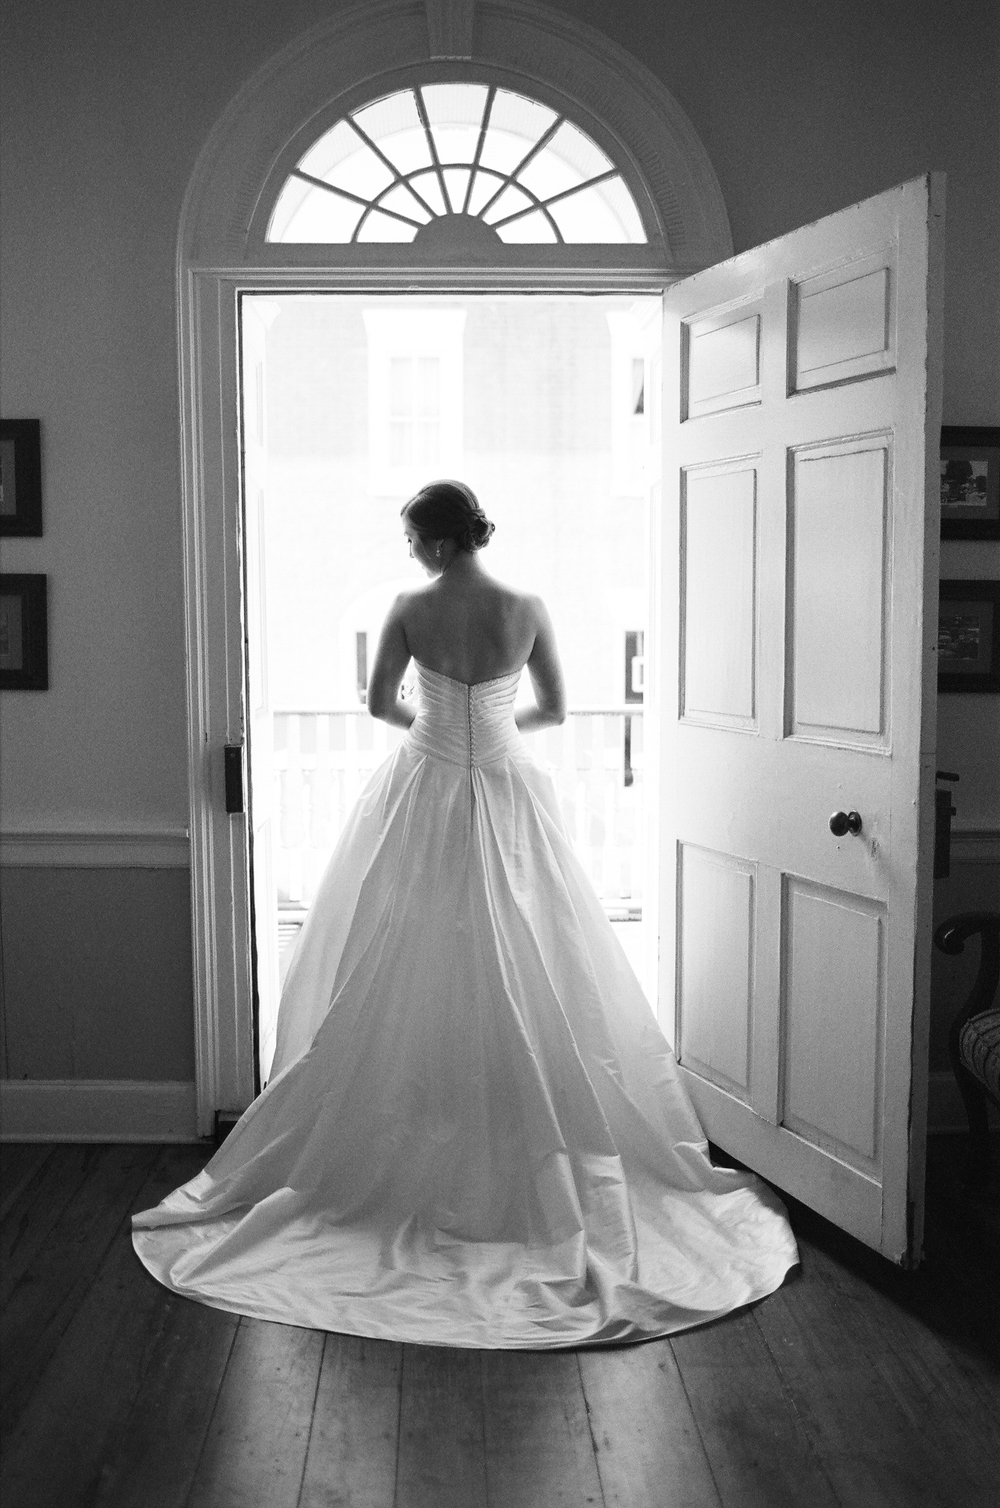 natalie_watson_weddings_1010.jpg